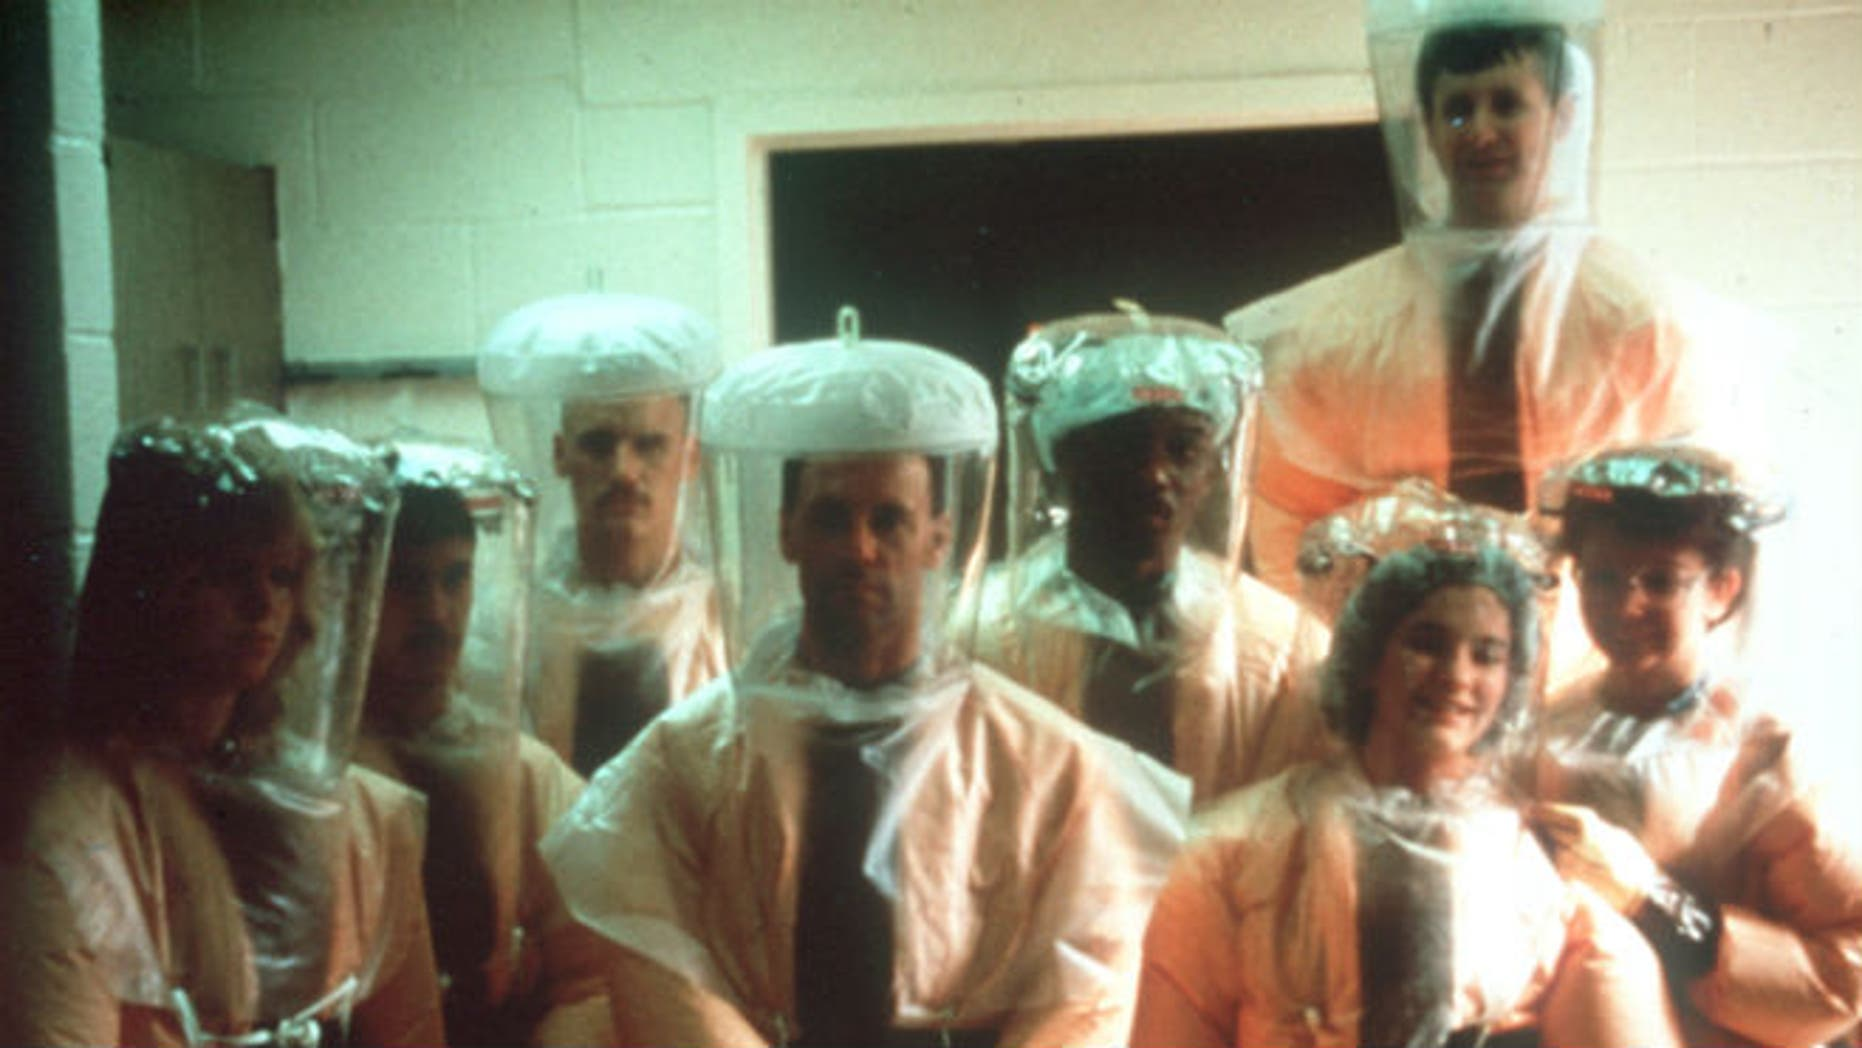 This handout photo provided by Dr. Jerry Jaax, taken in Dec. 1989, shows the Veterinary Medicine Division team from US Army Medical Research Institute of Infectious Diseases (USAMRIID) in the hot zone, Nonhuman primate quarantine facility in Reston, Va. As it turns out, Americans' introduction to the deadly Ebola virus 25 years ago came courtesy of an outbreak that turned out to be completely nonlethal to humans. (AP Photo/Gerald Jaax)